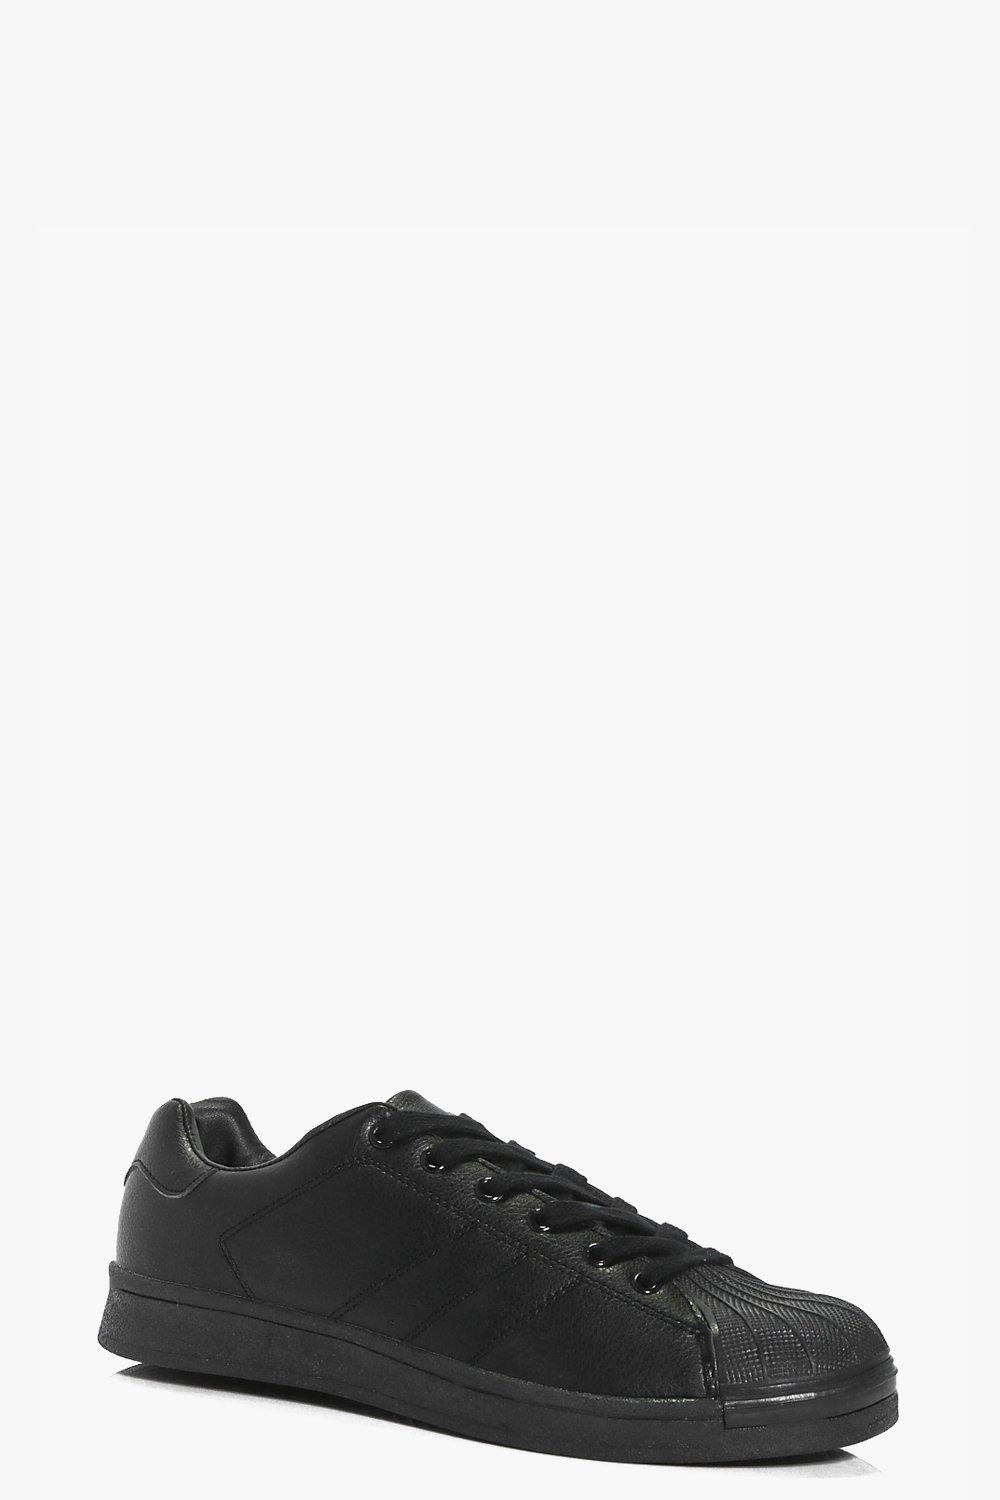 Lara Lace Up Contrast Trainer